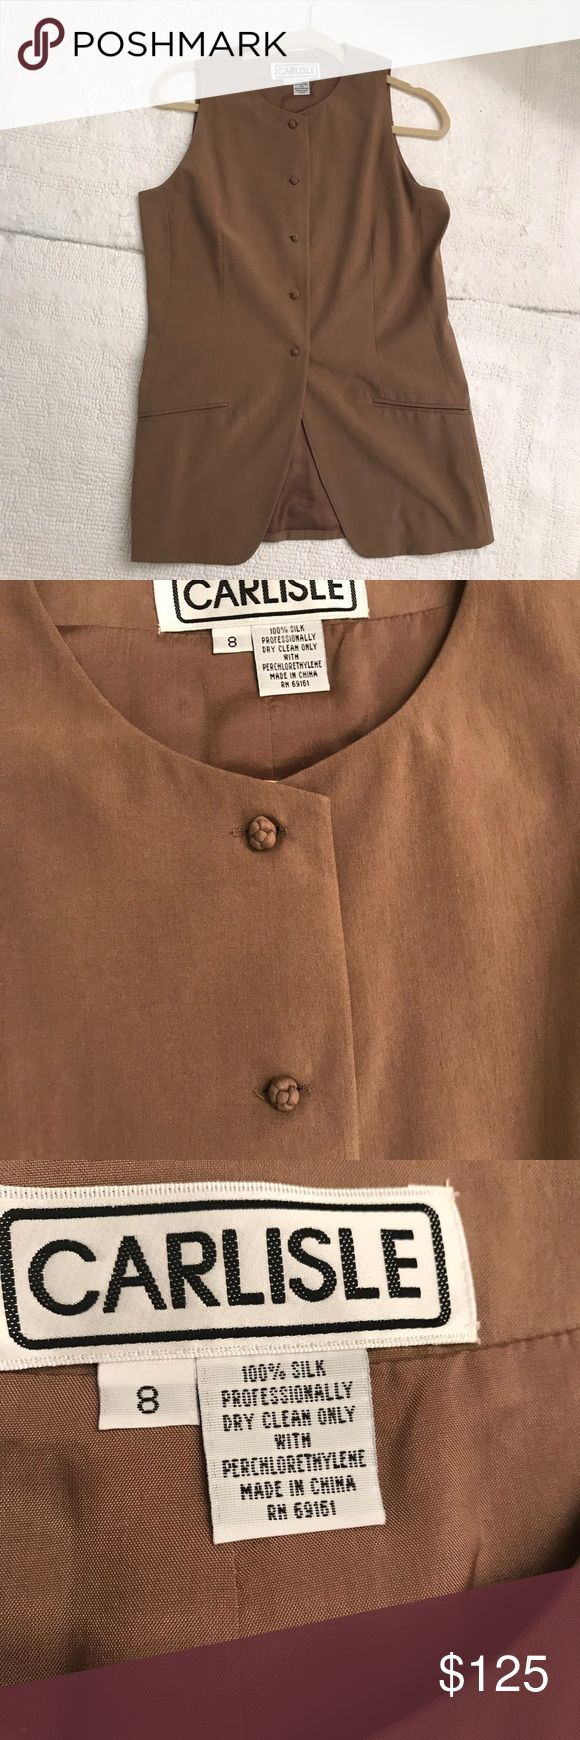 Carlisle Silk long vest / Top Carlisle 100% Silk taupe / light brown colored long vest with very unique knotted material buttons NWT Carlisle Tops